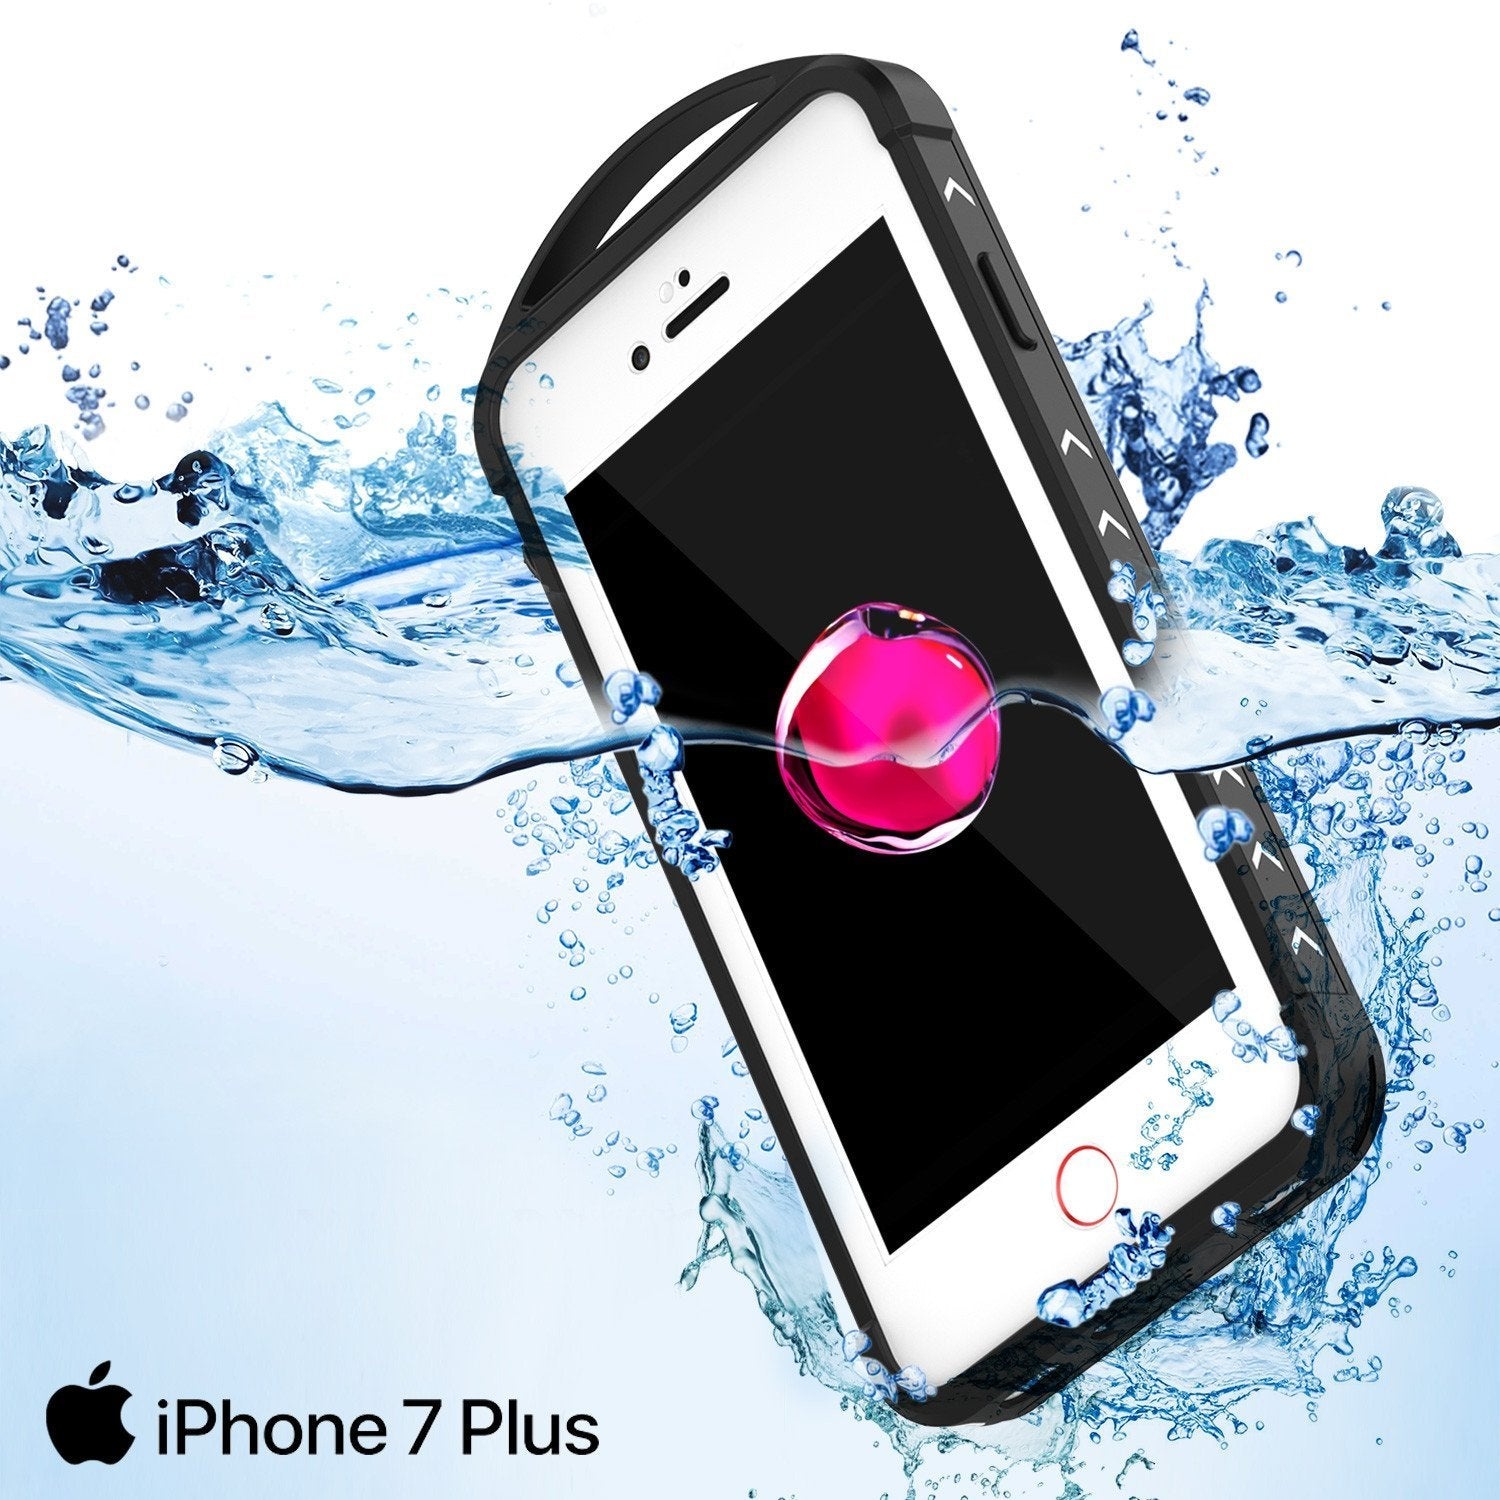 iPhone 8+ Plus Waterproof Case, Punkcase ALPINE Series, White | Heavy Duty Armor Cover - PunkCase NZ